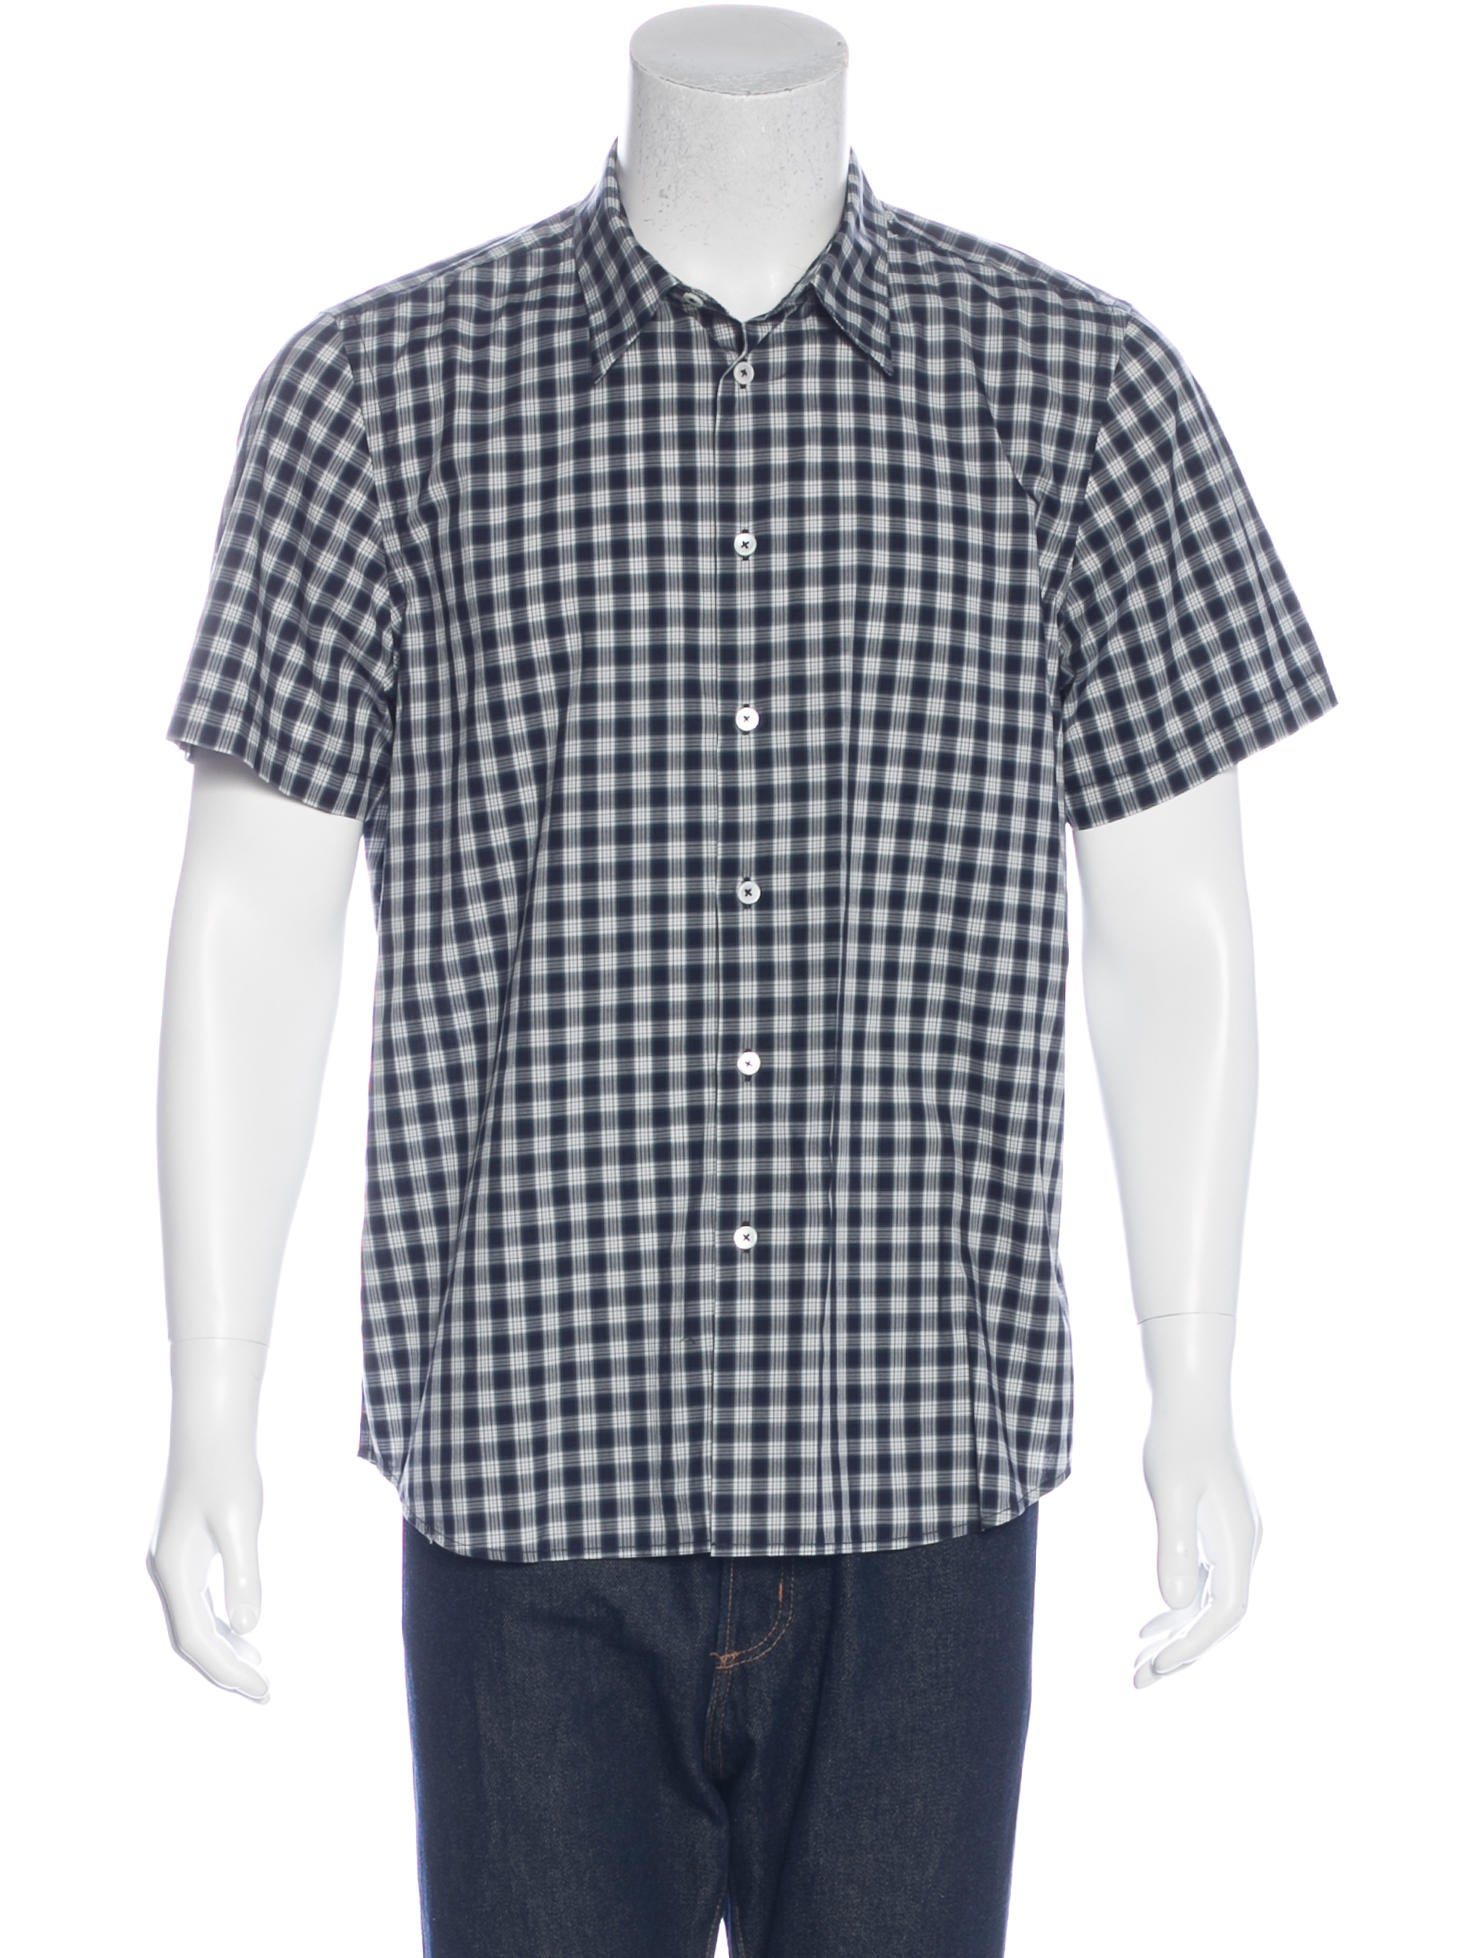 Ps by paul smith plaid short sleeve shirt clothing Short sleeve plaid shirts